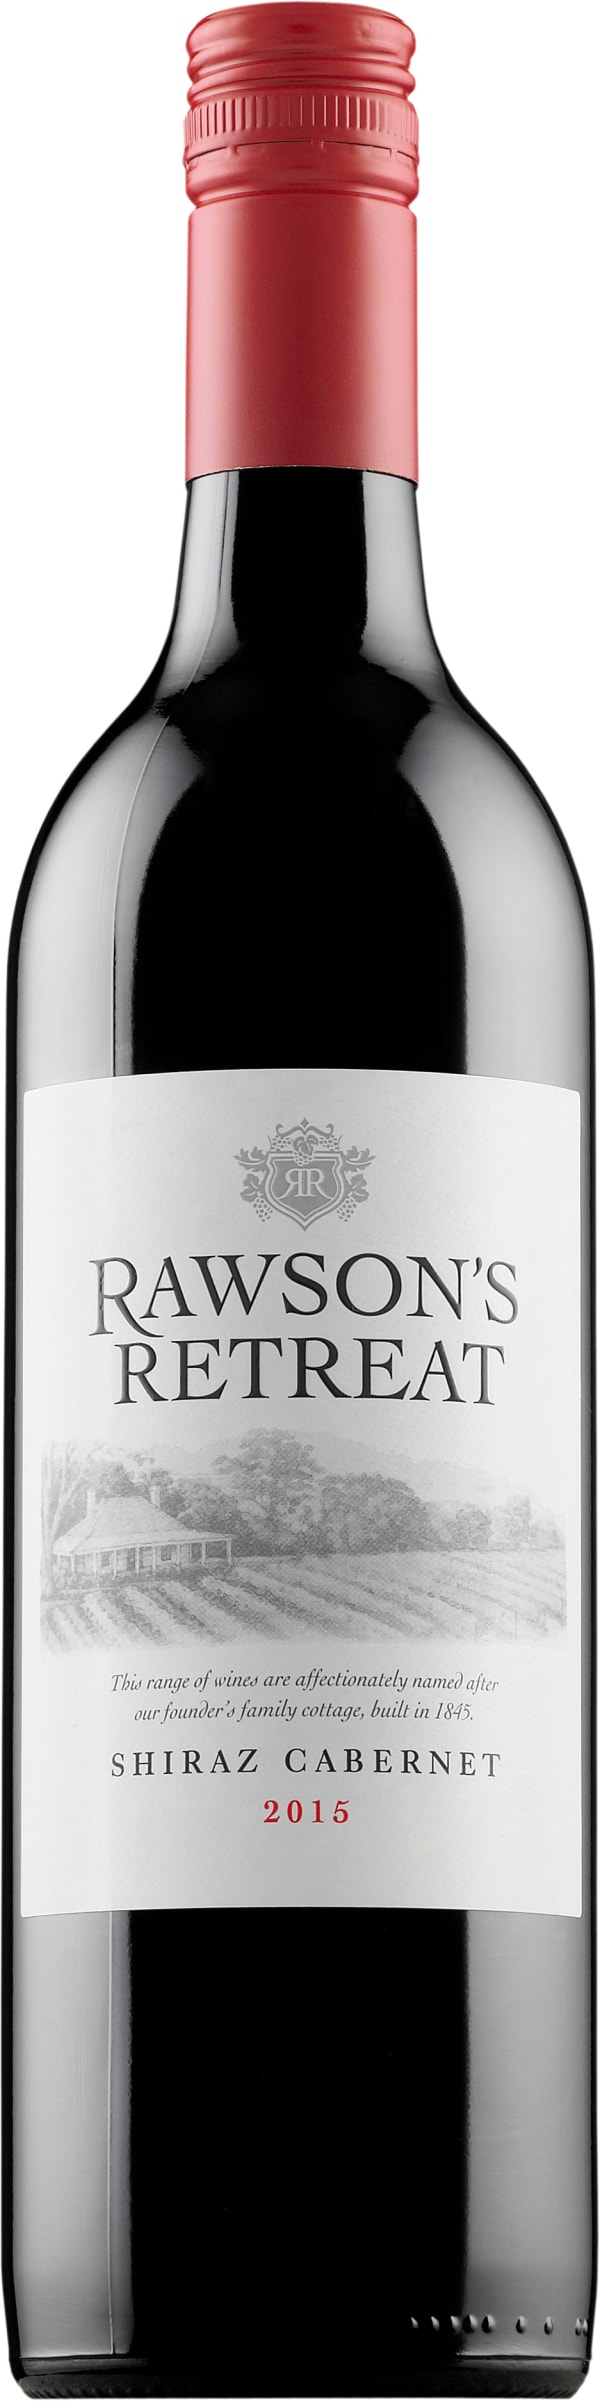 Rawson's Retreat Shiraz Cabernet 2018